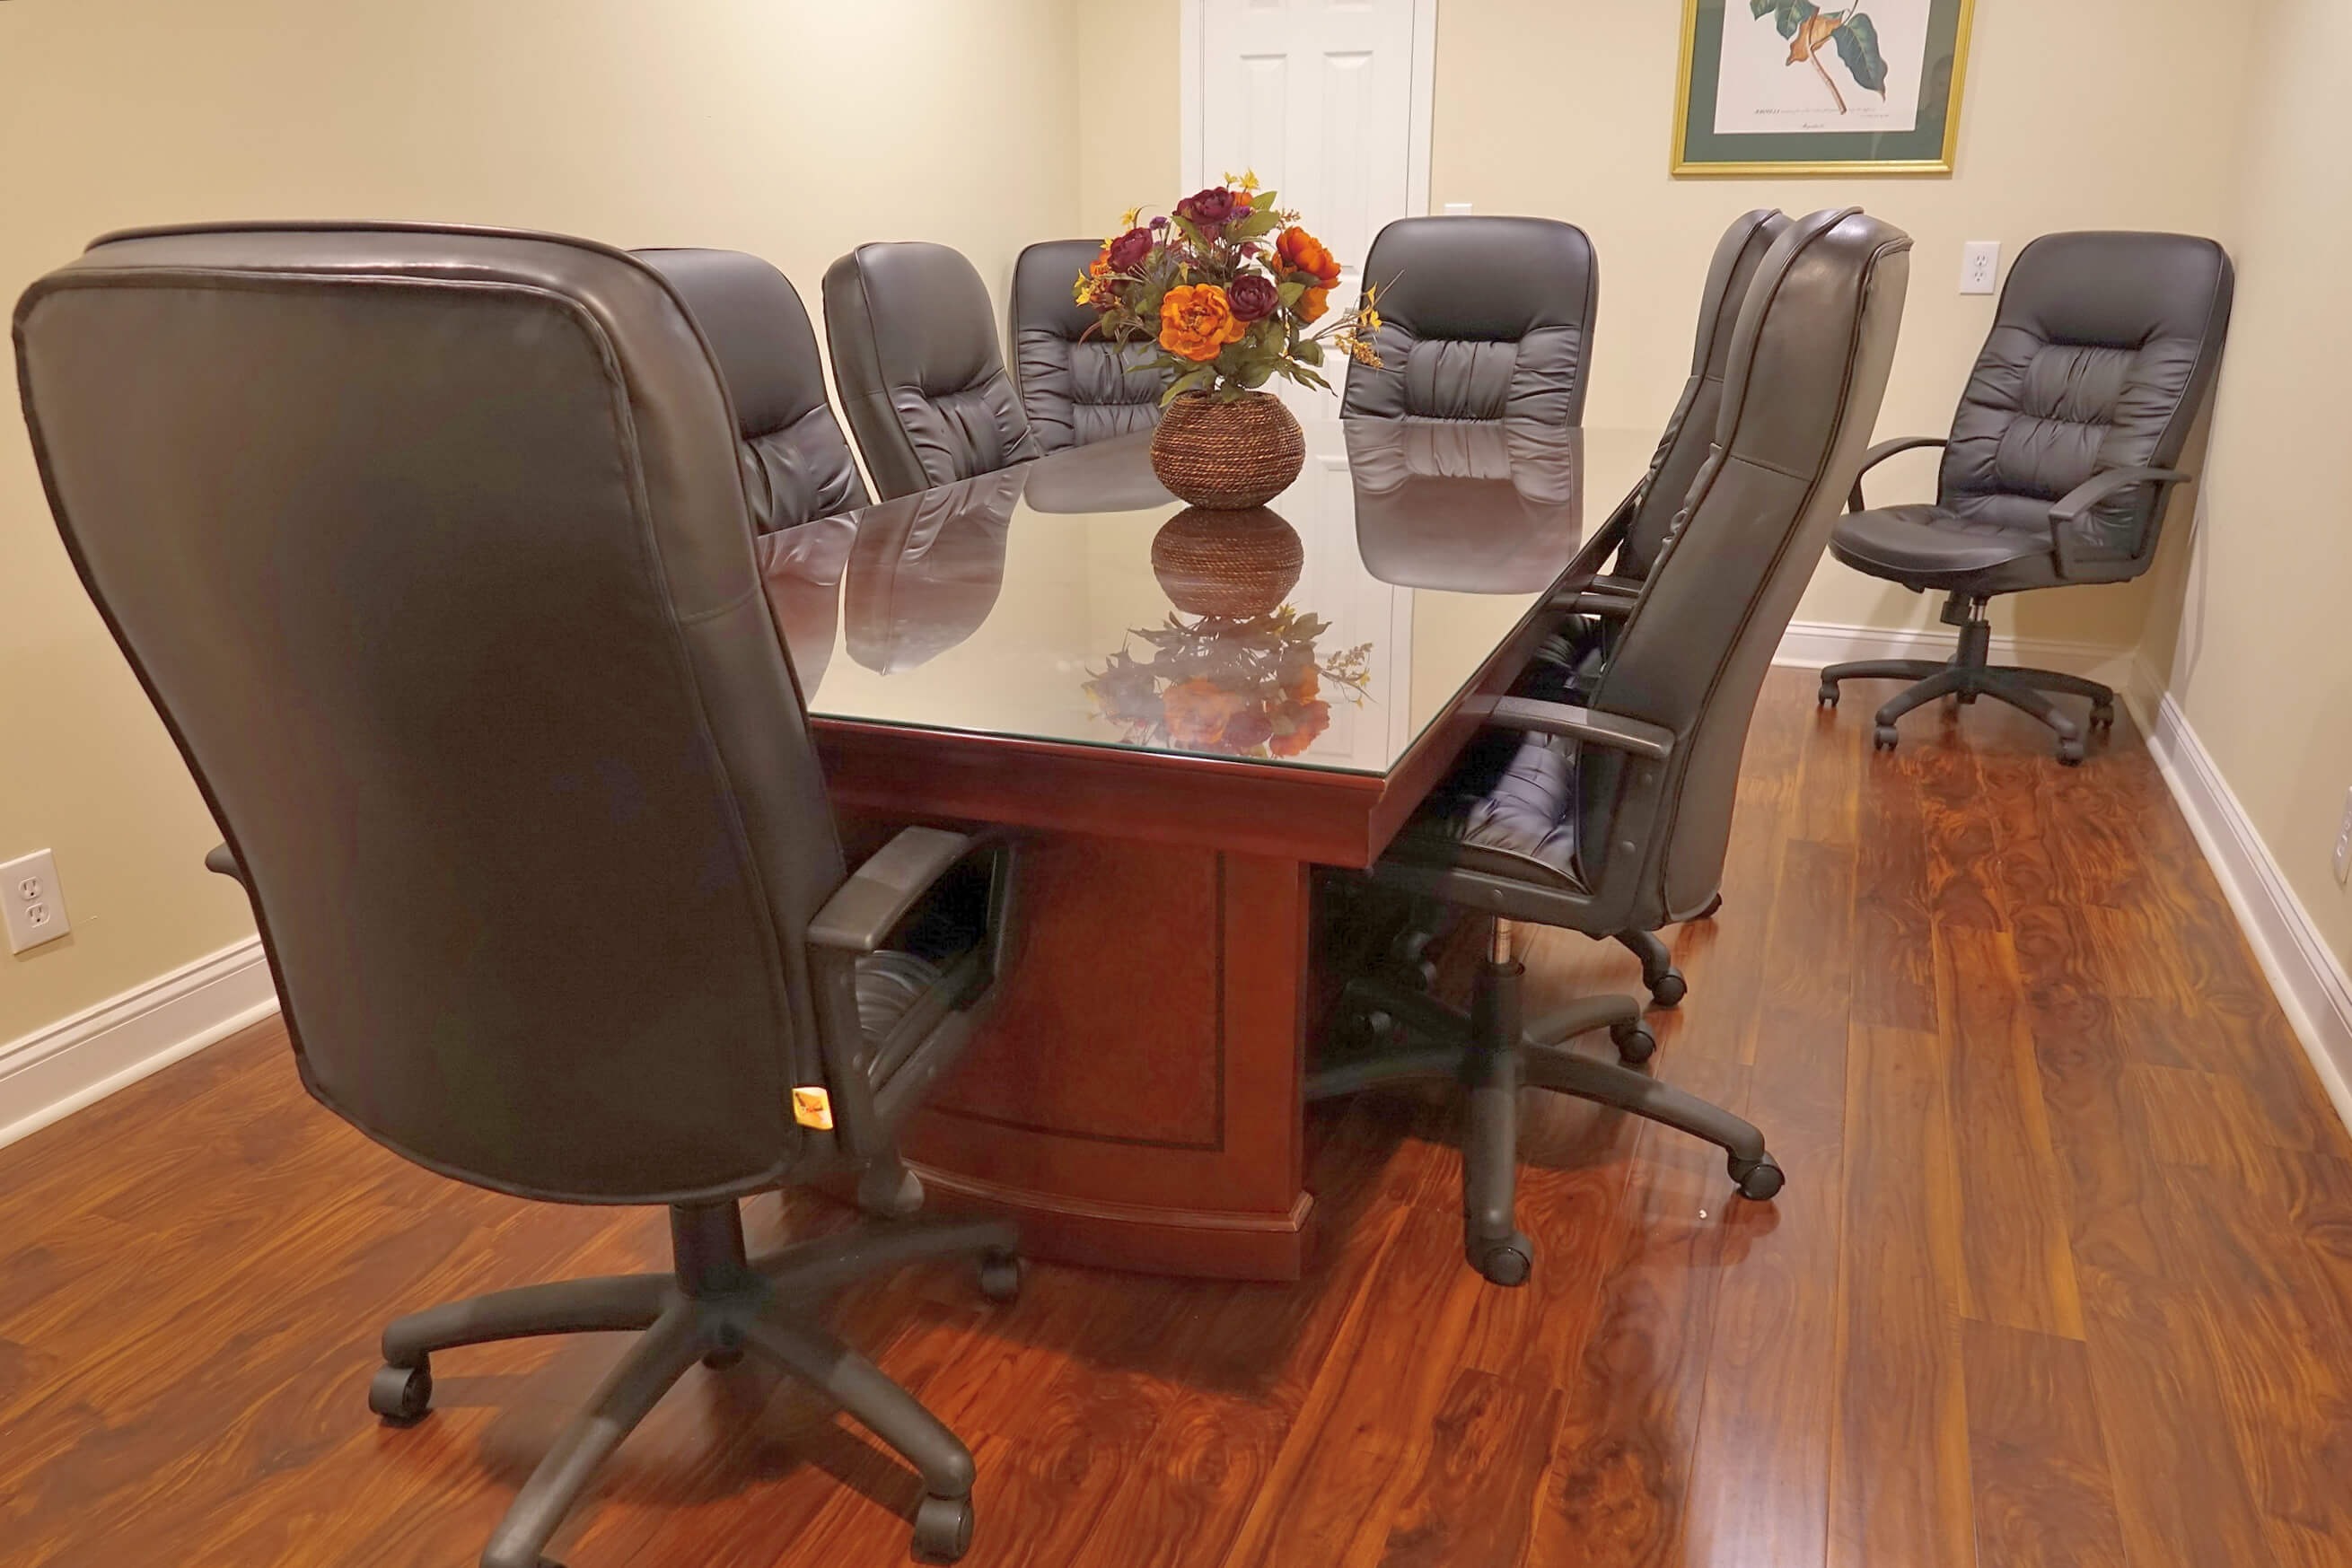 Used Conference Table - Excellent Condition